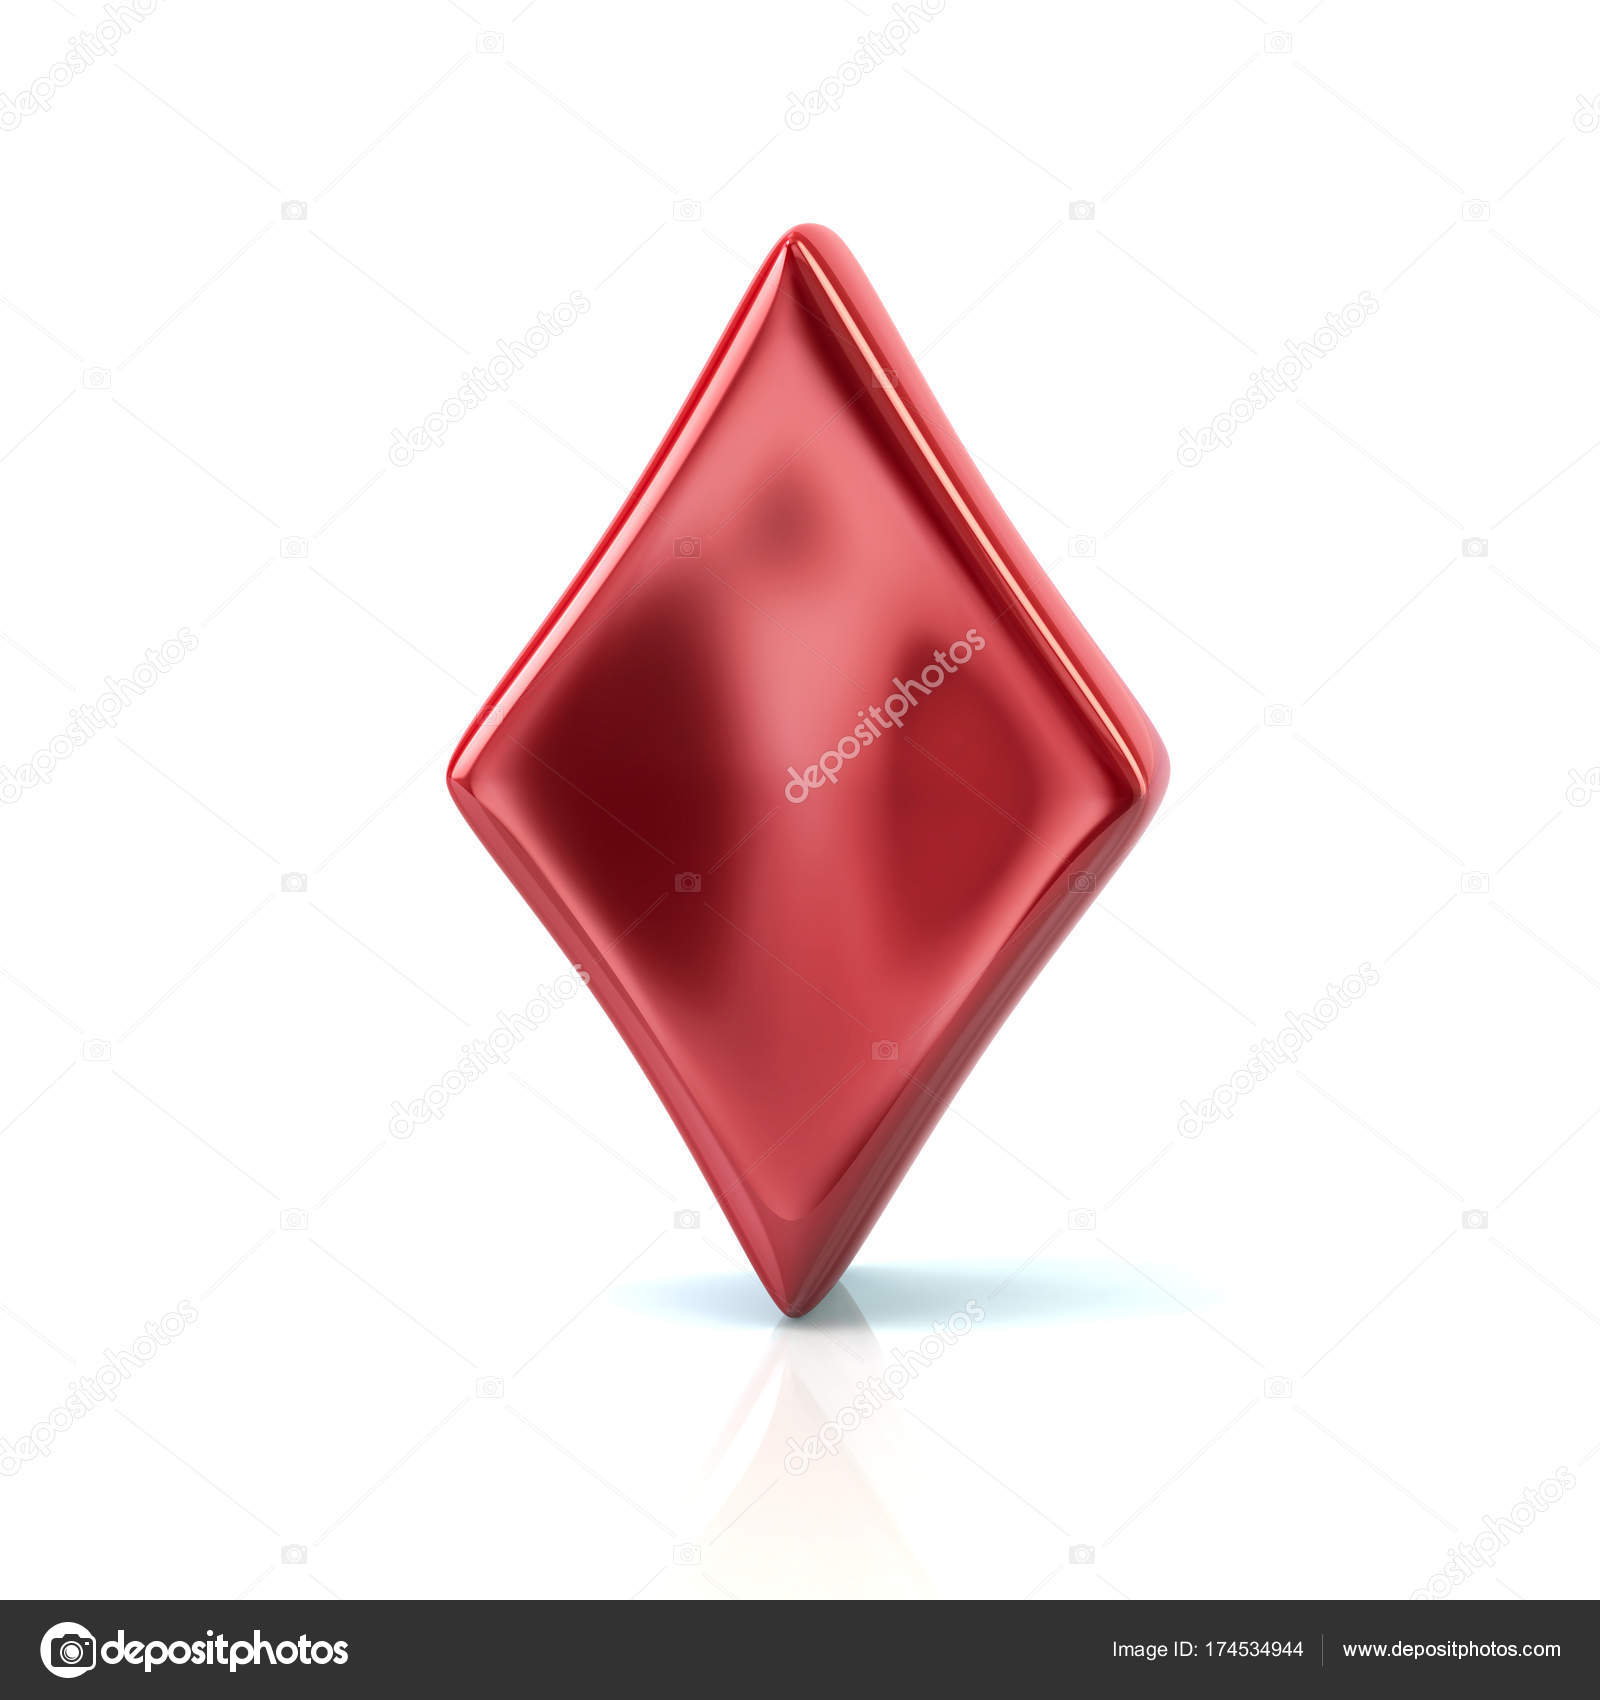 illustration depositphotos by photo valdum symbol achievers white diamond card on background red stock